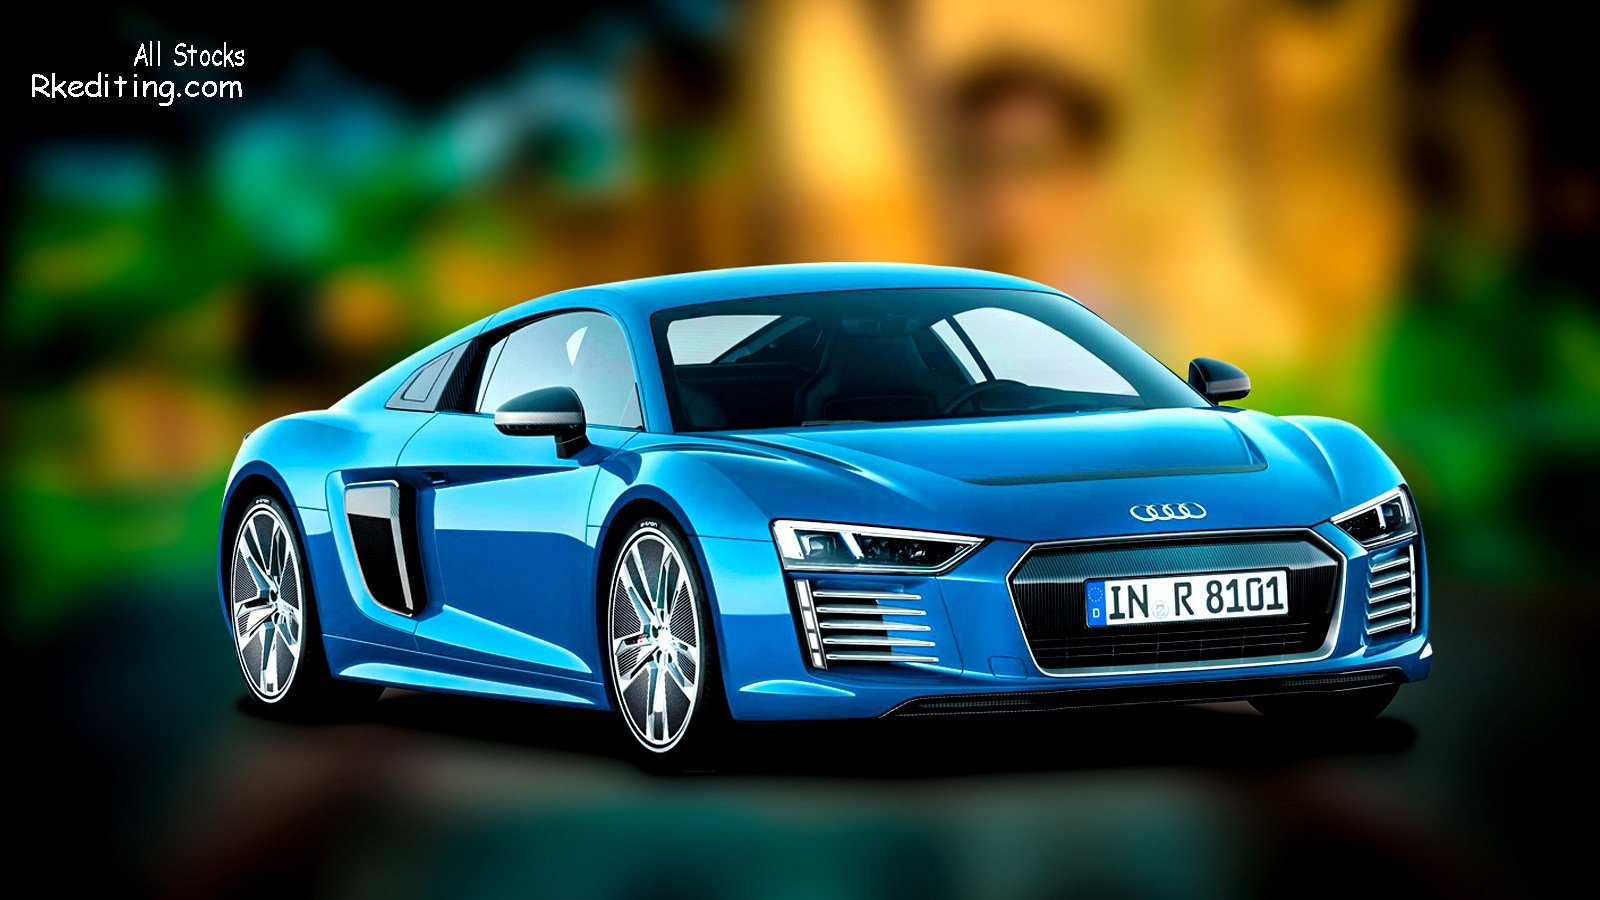 Latest Tag For Hd Background Of Car White Car Wallpapers Hd Free Download